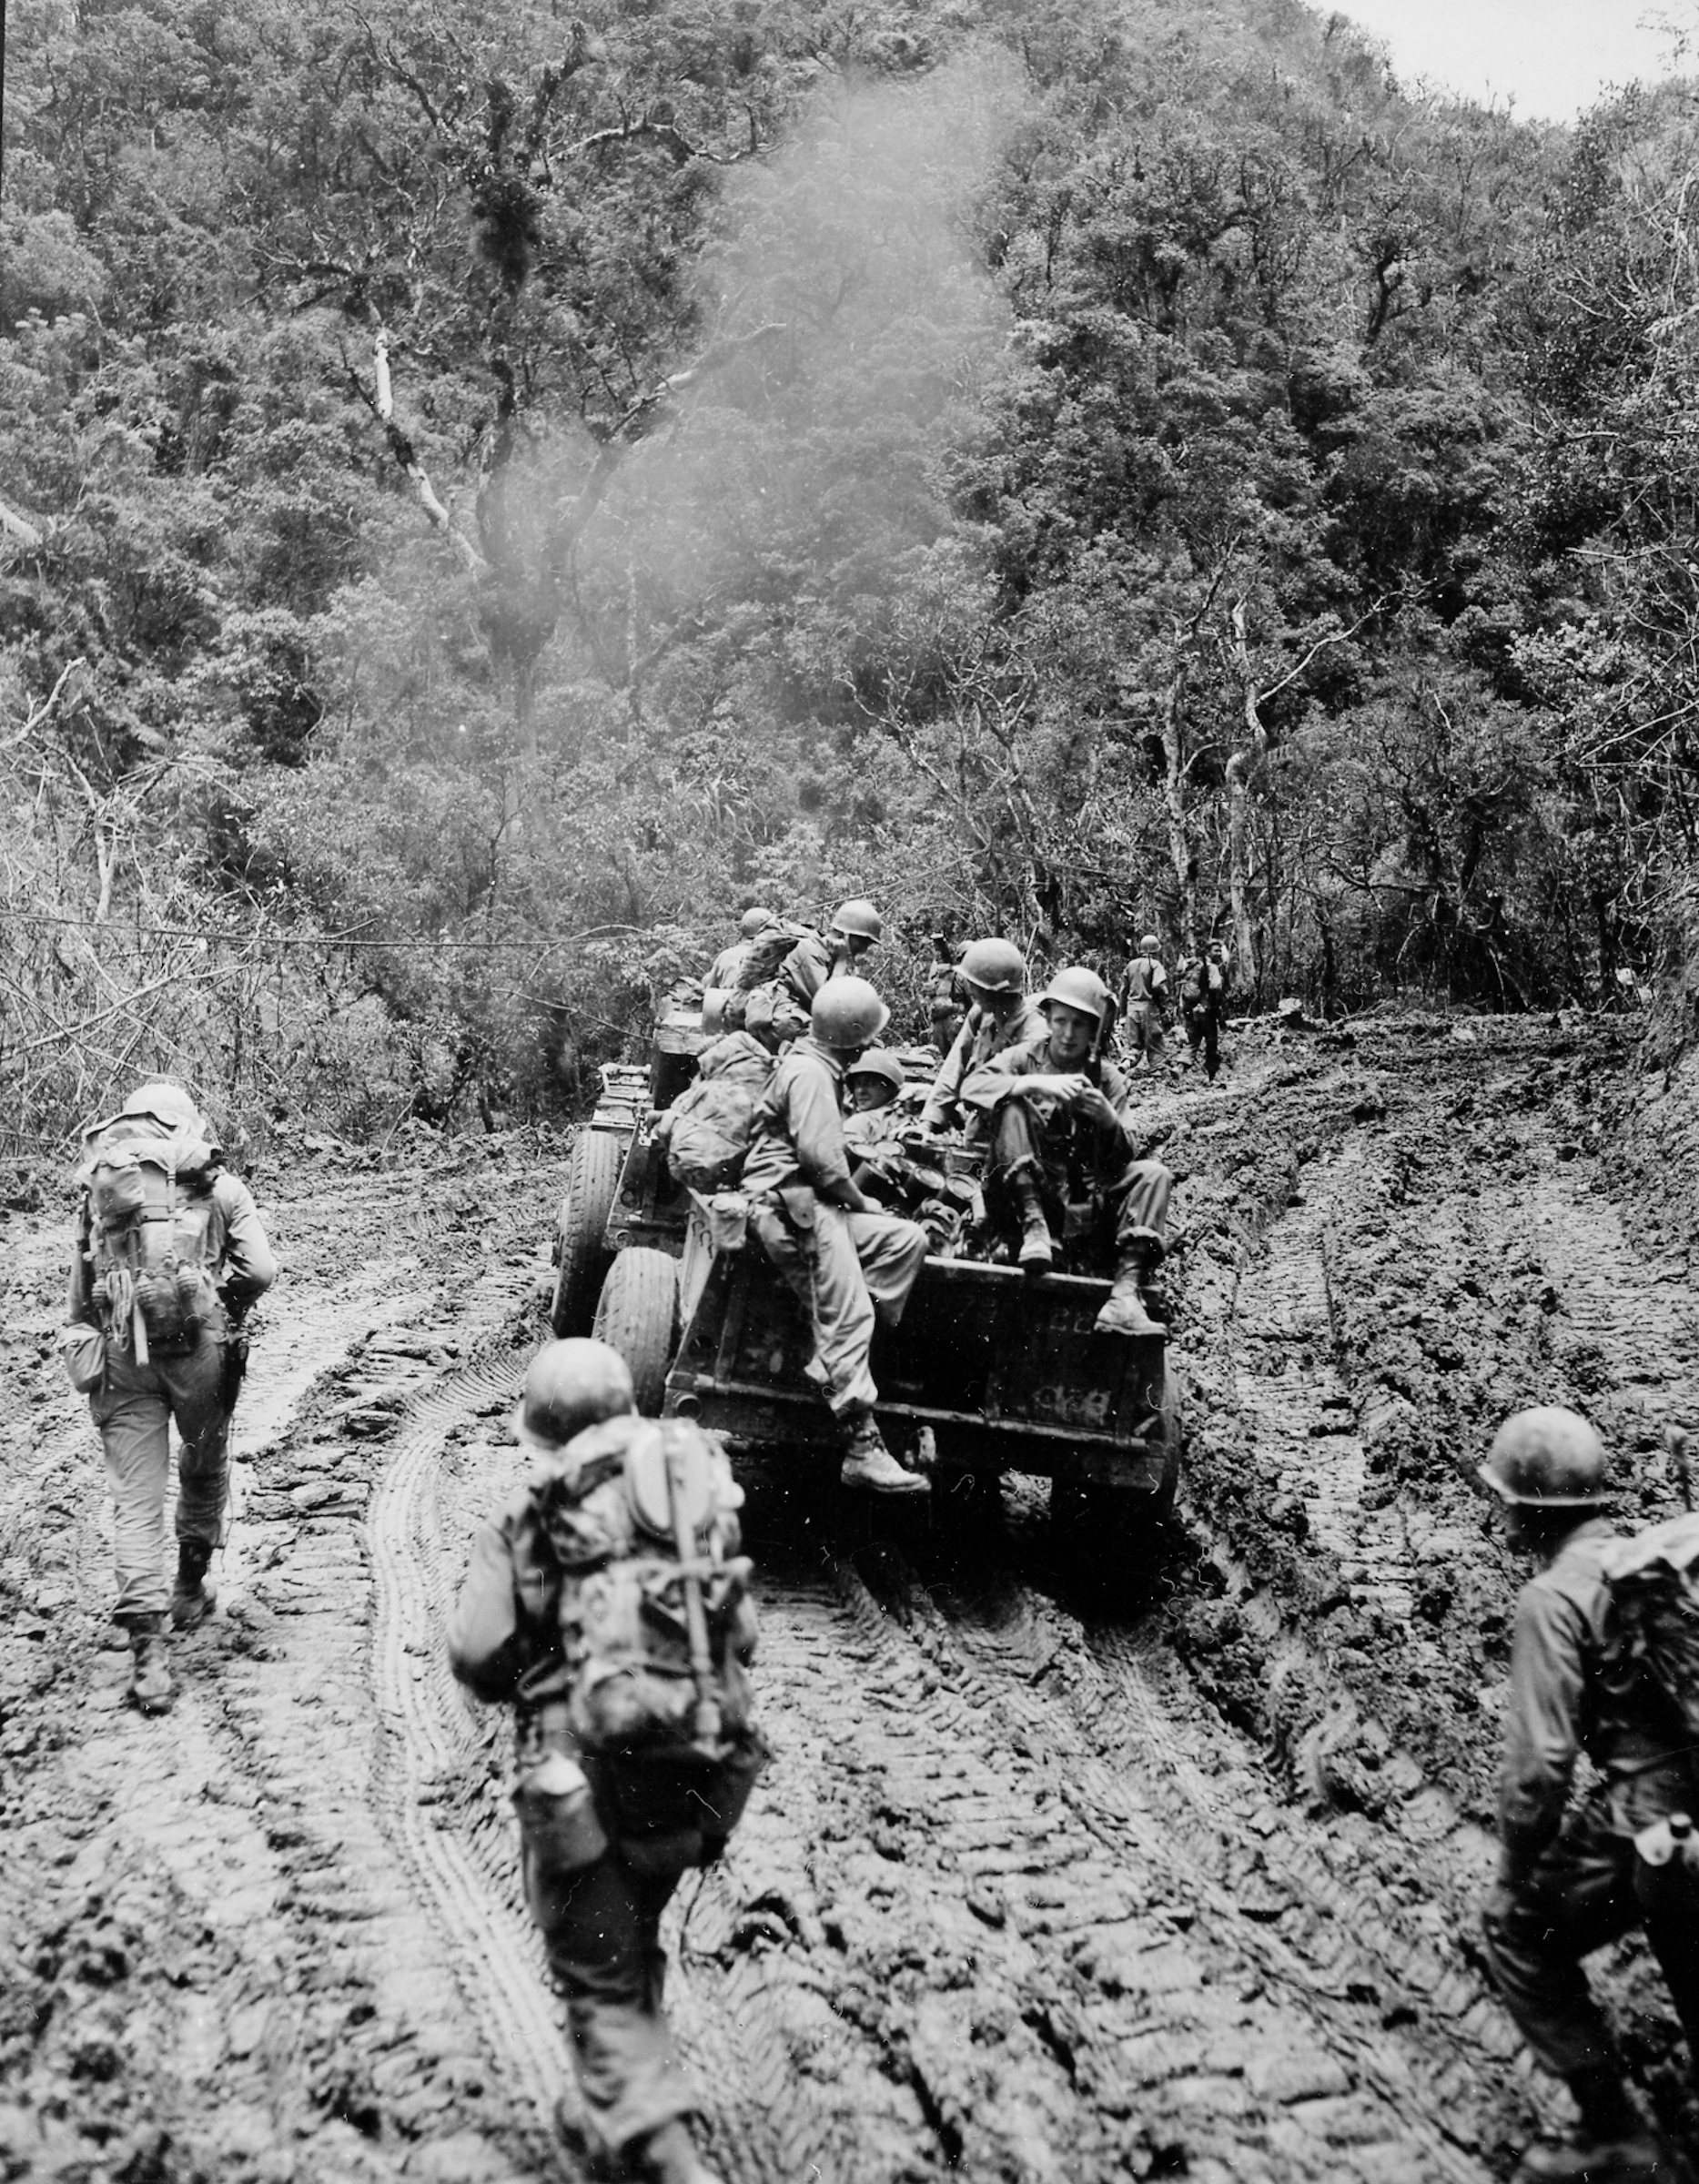 32nd inf div troops and vehicles vella verde trail luzon philippines 05--45 (1 of 1)